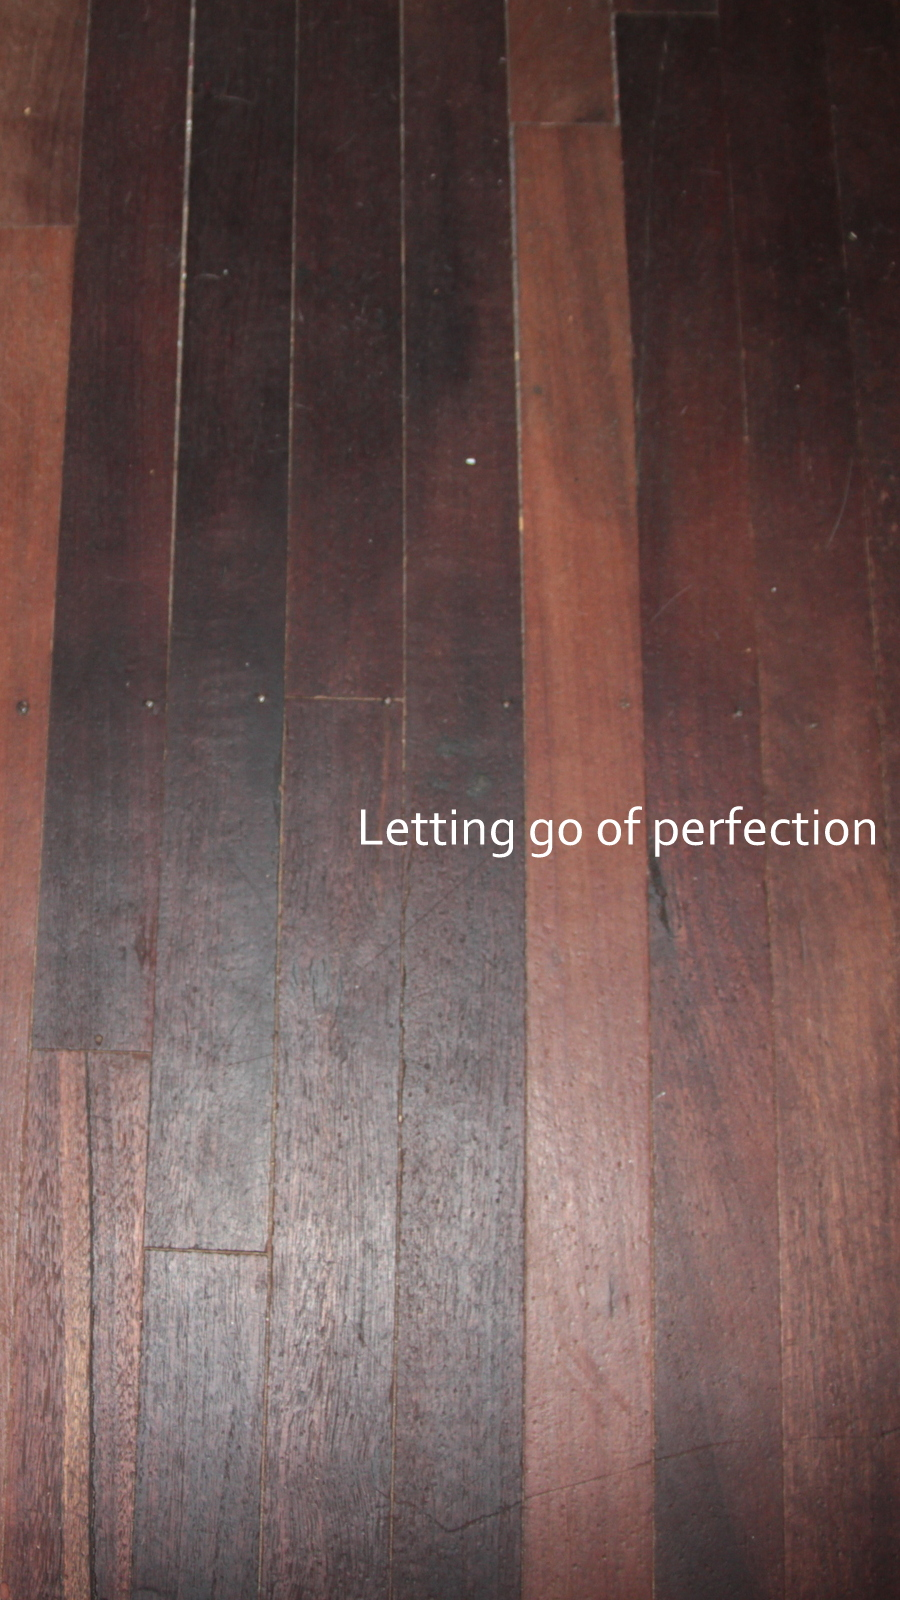 Letting go of perfection improved our floors and purfylled our life.